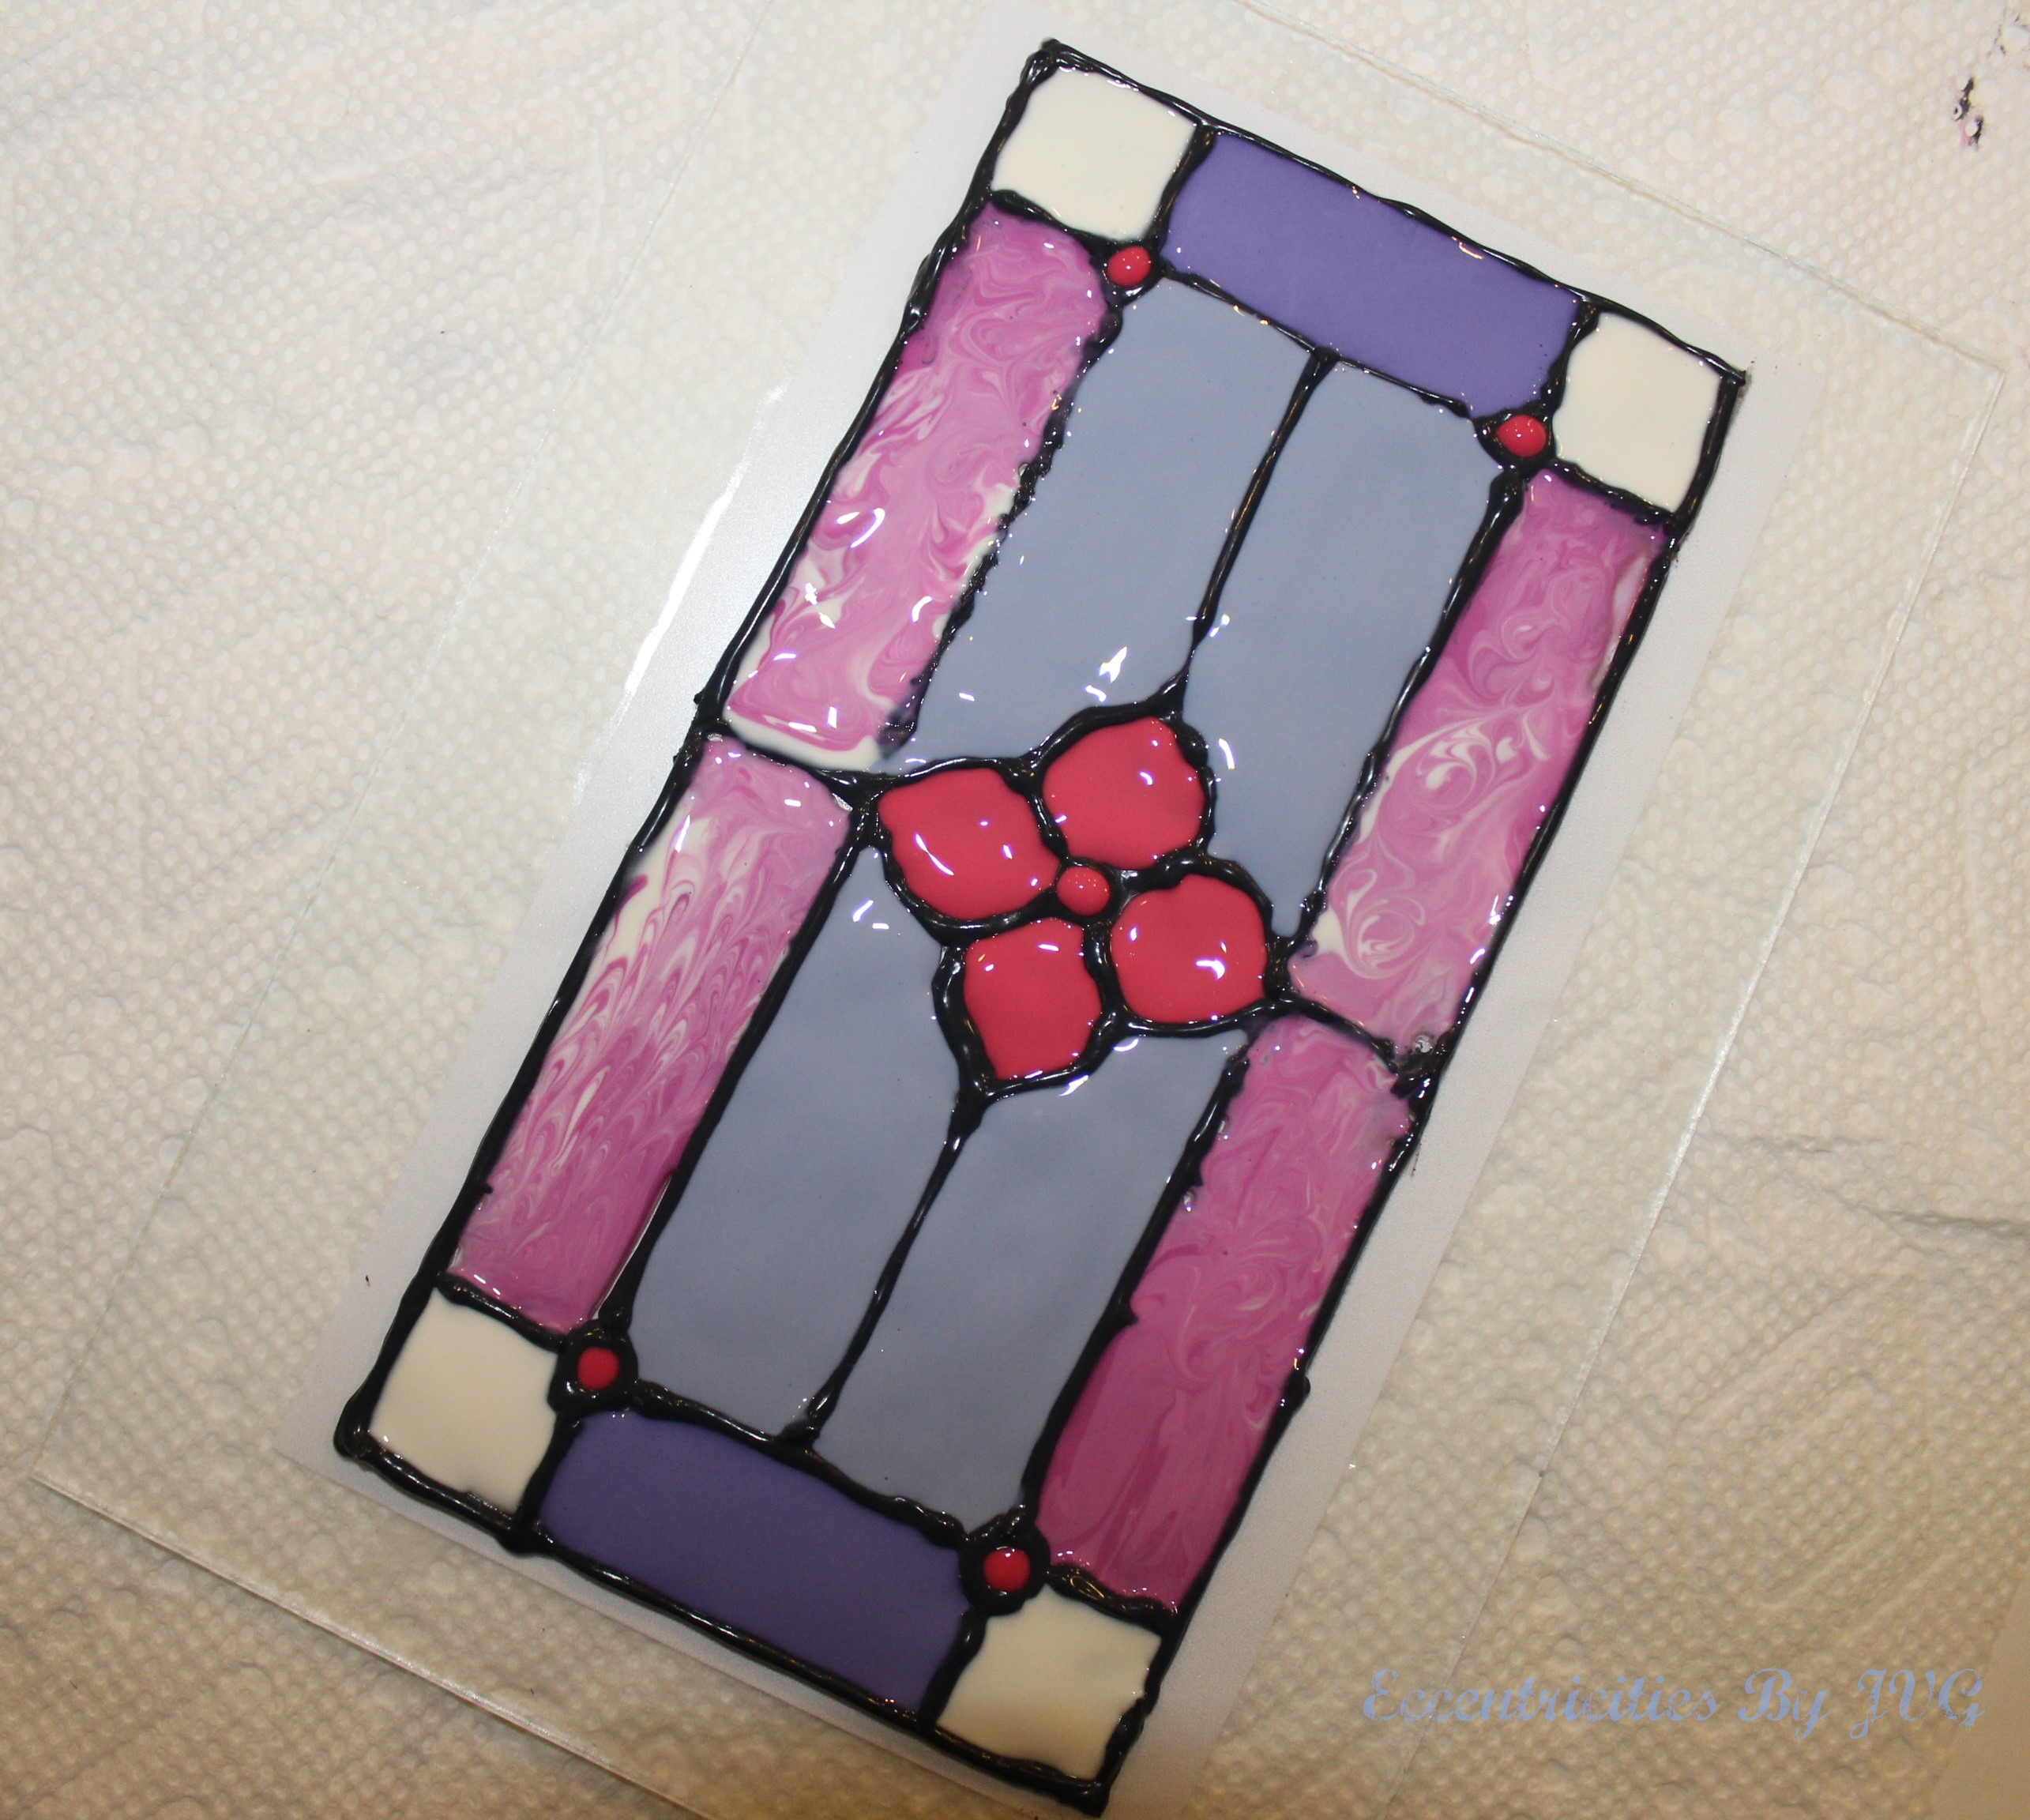 traditional style stained glass art